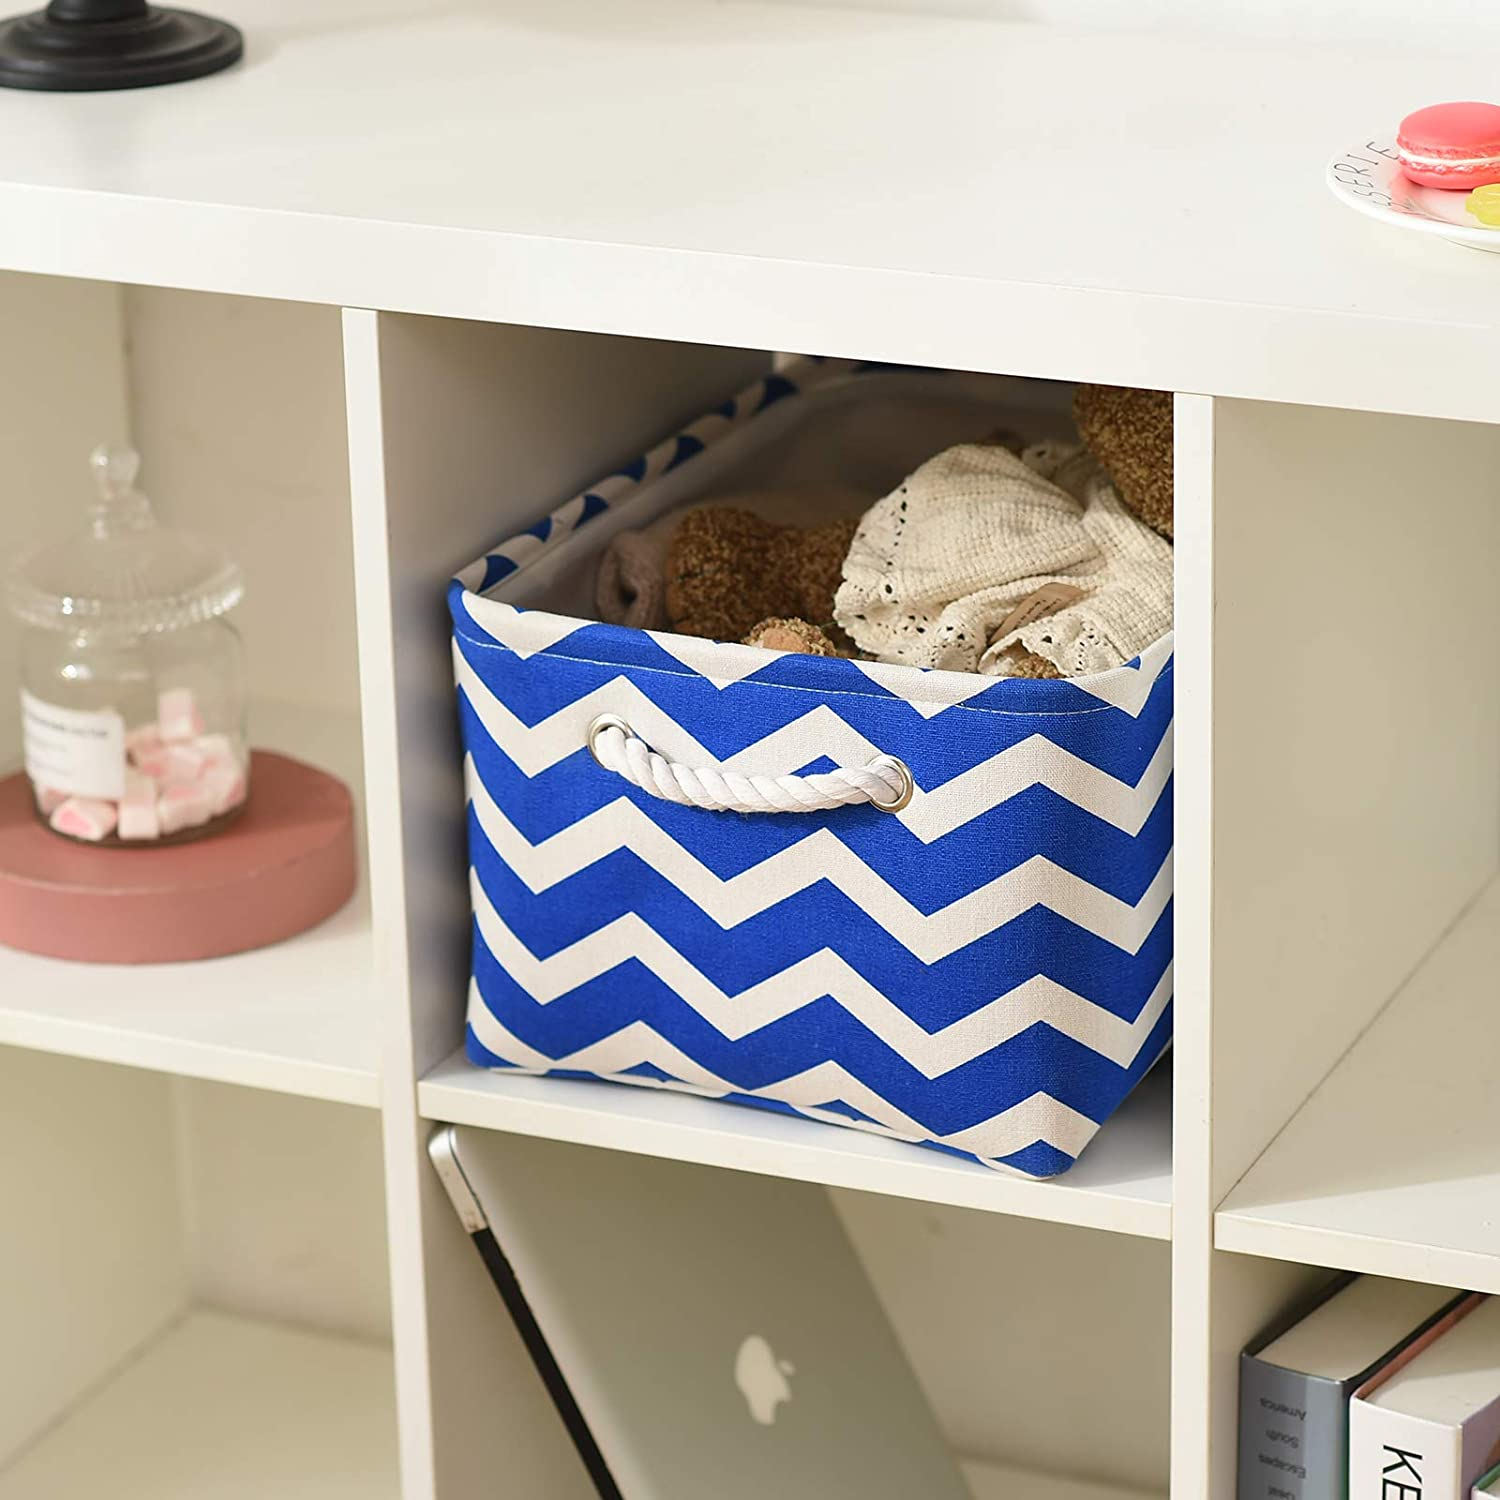 TcaFmac Collapsible Fabric Storage Basket Foldable Storage Boxes Cubes for Shelf Nursery Home Sturdy Storage Bins Organizer with Handles for Clothes and Toy Storage Blue Wavy Stripes, 16x12x8inch